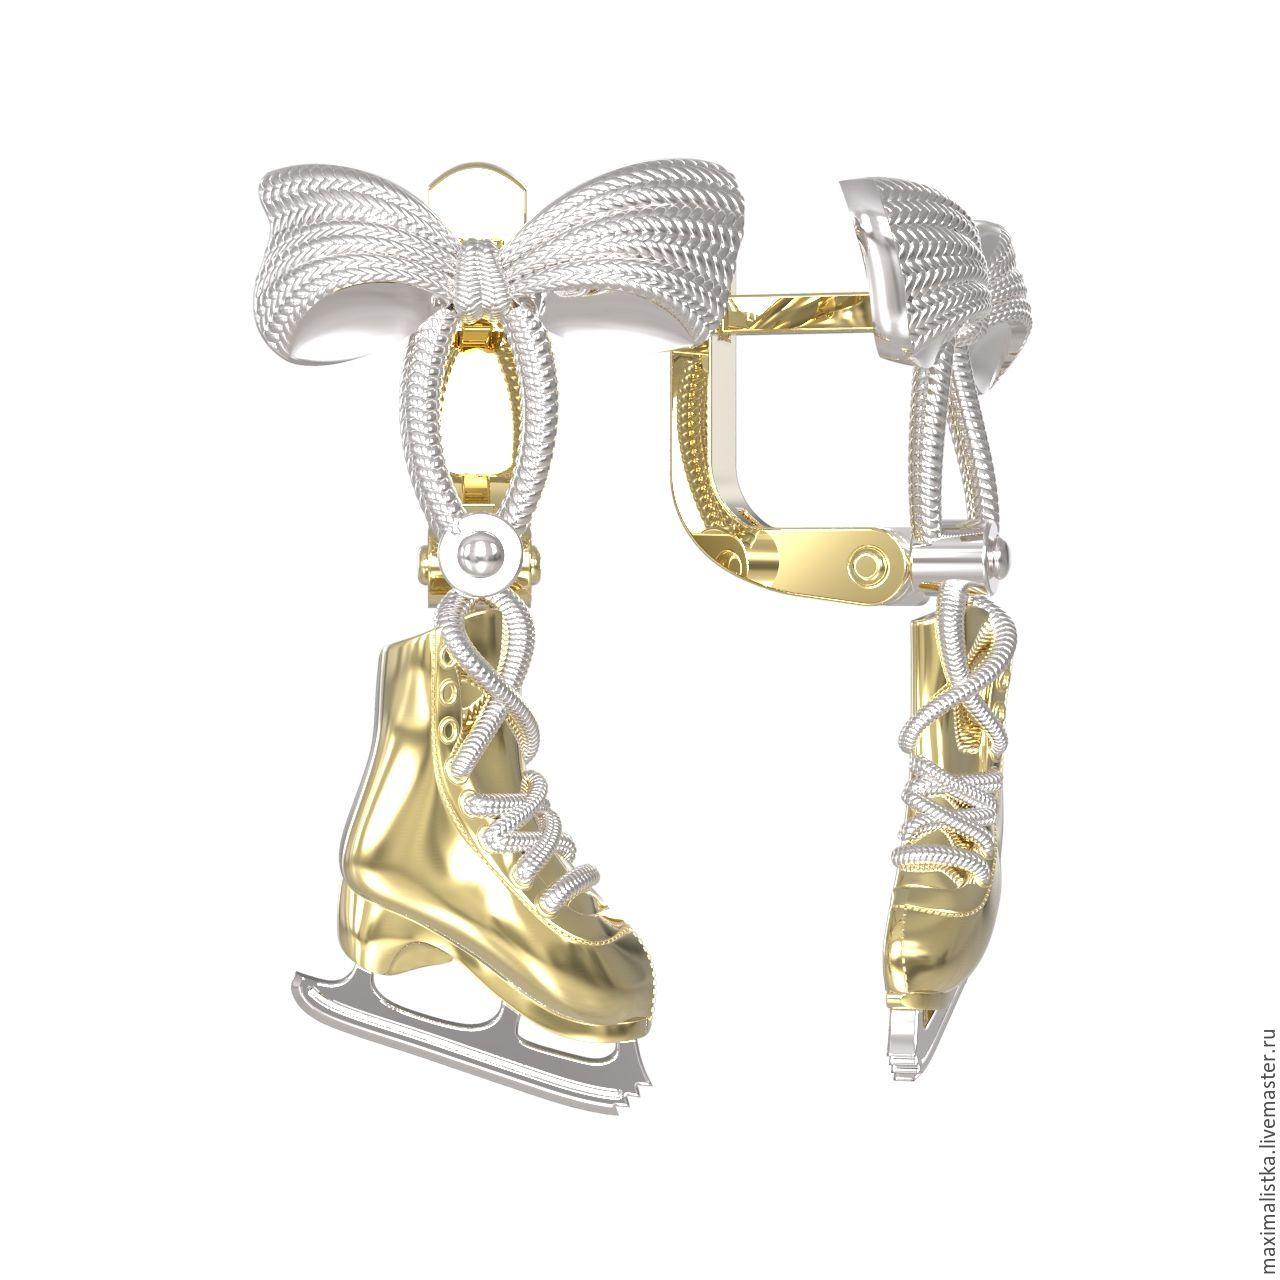 Earrings Handmade Livemaster Gold Skates Skater